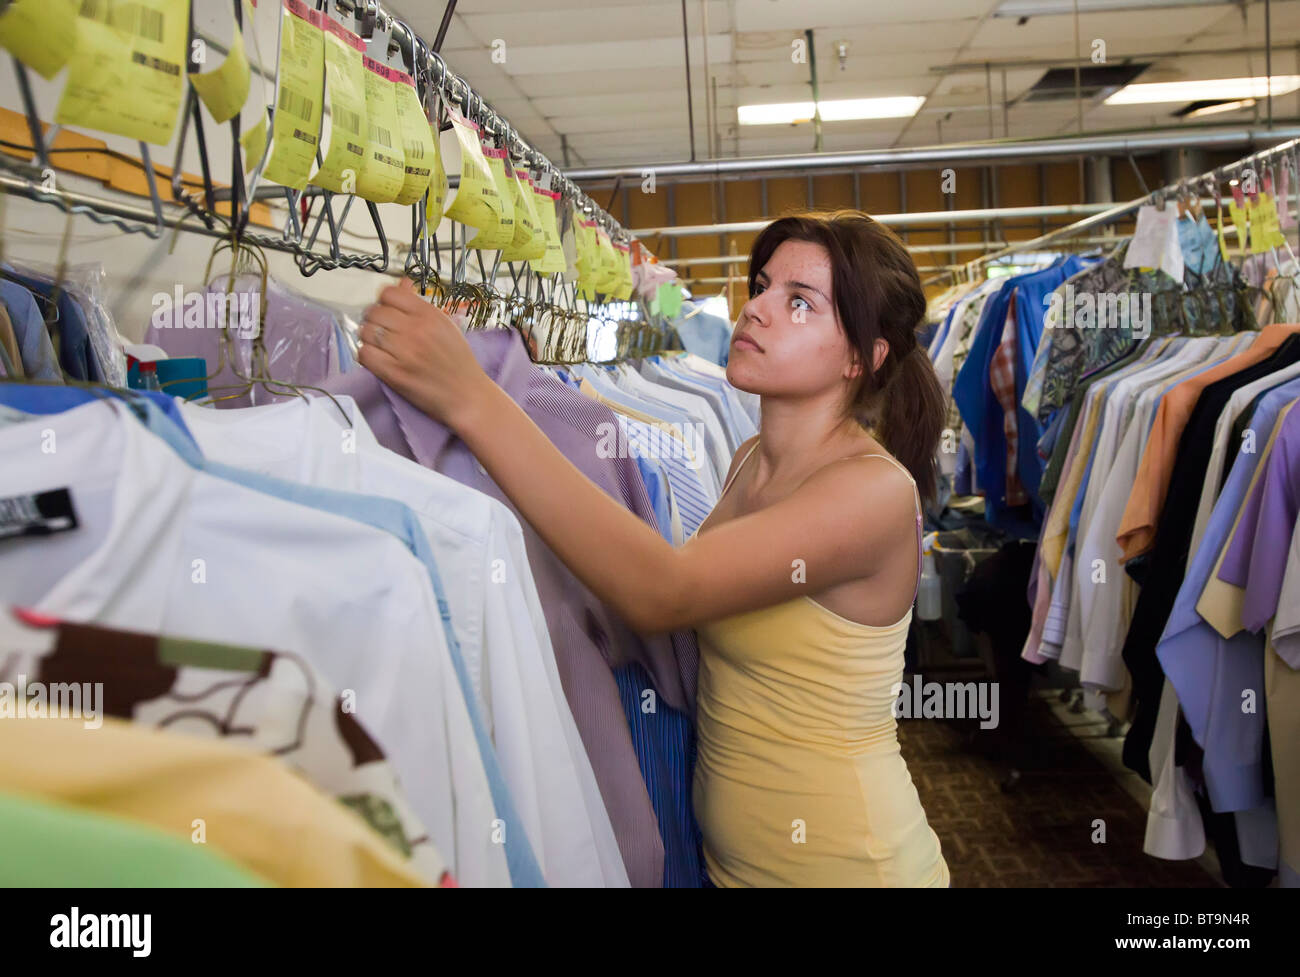 Broomfield, Colorado - Workers press and hang shirts in a shirt laundry. - Stock Image